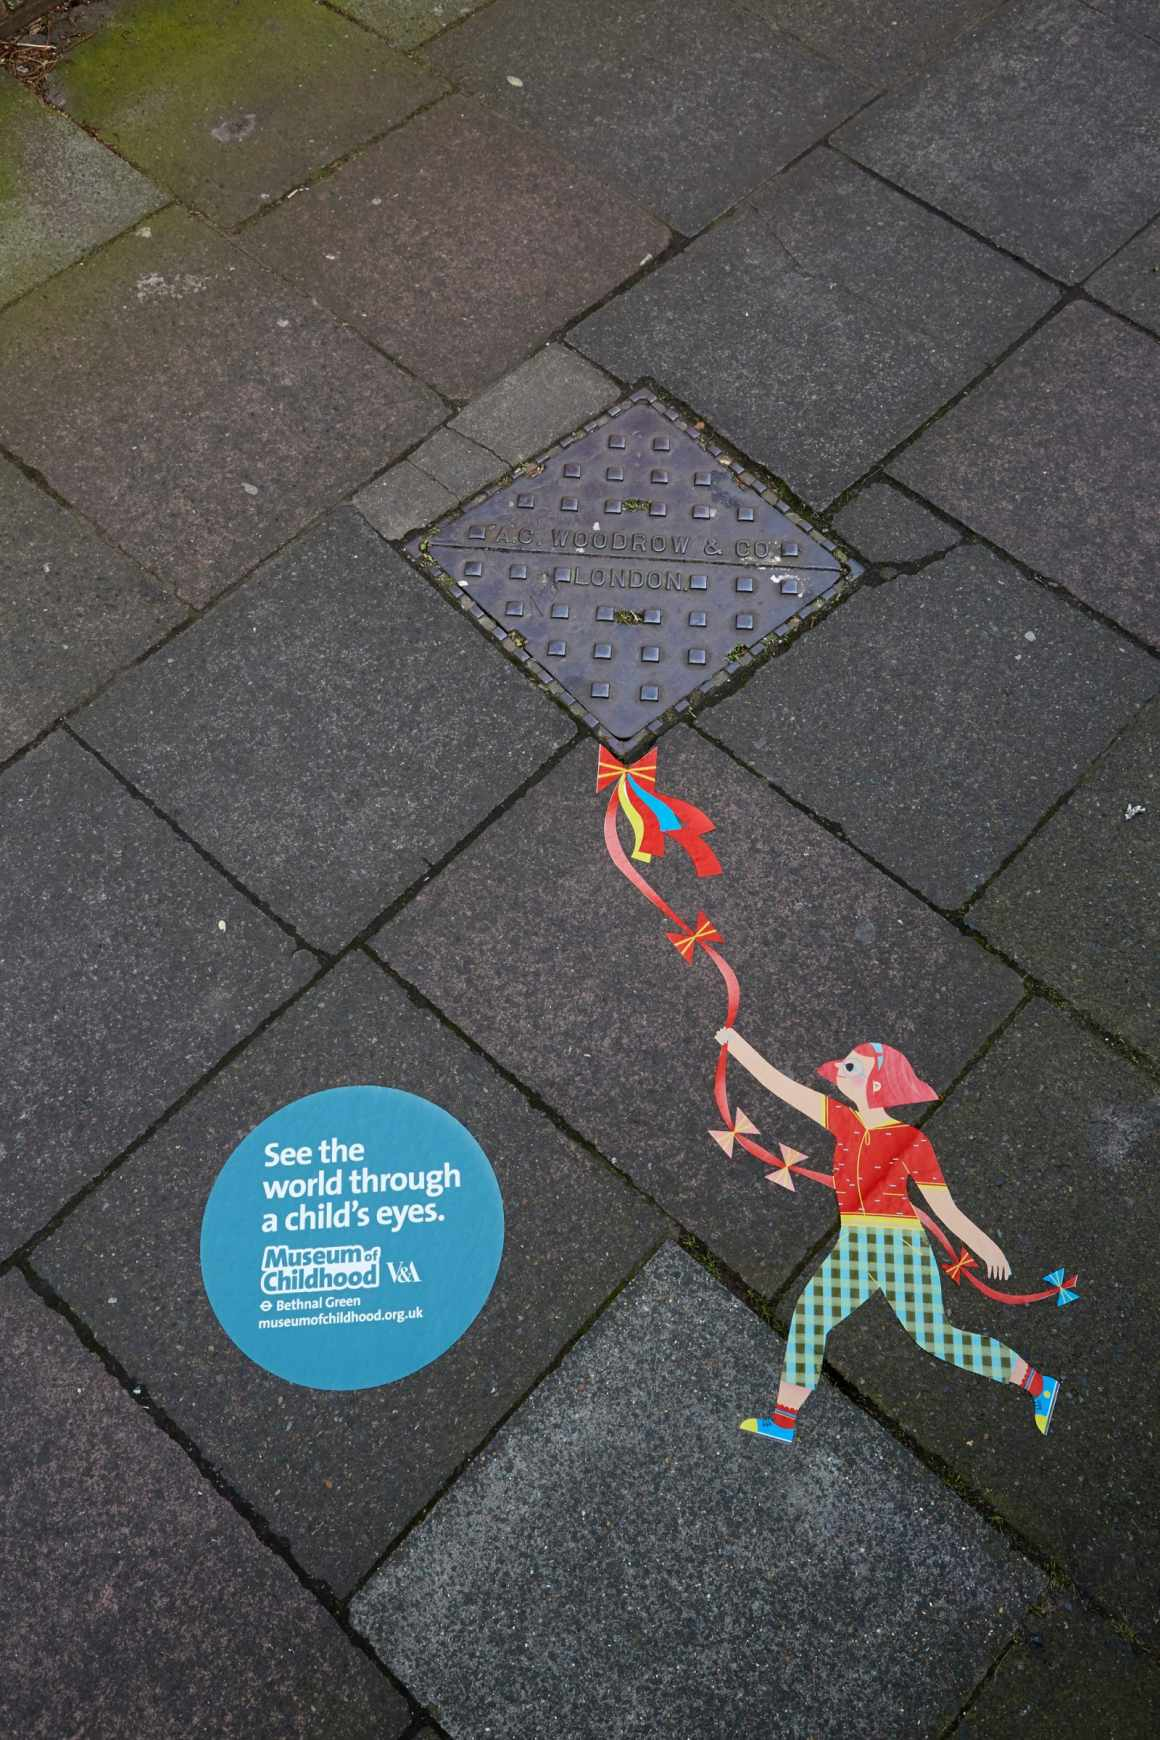 Imaginary Friends, by BBDO for V&A Museum of Childhood